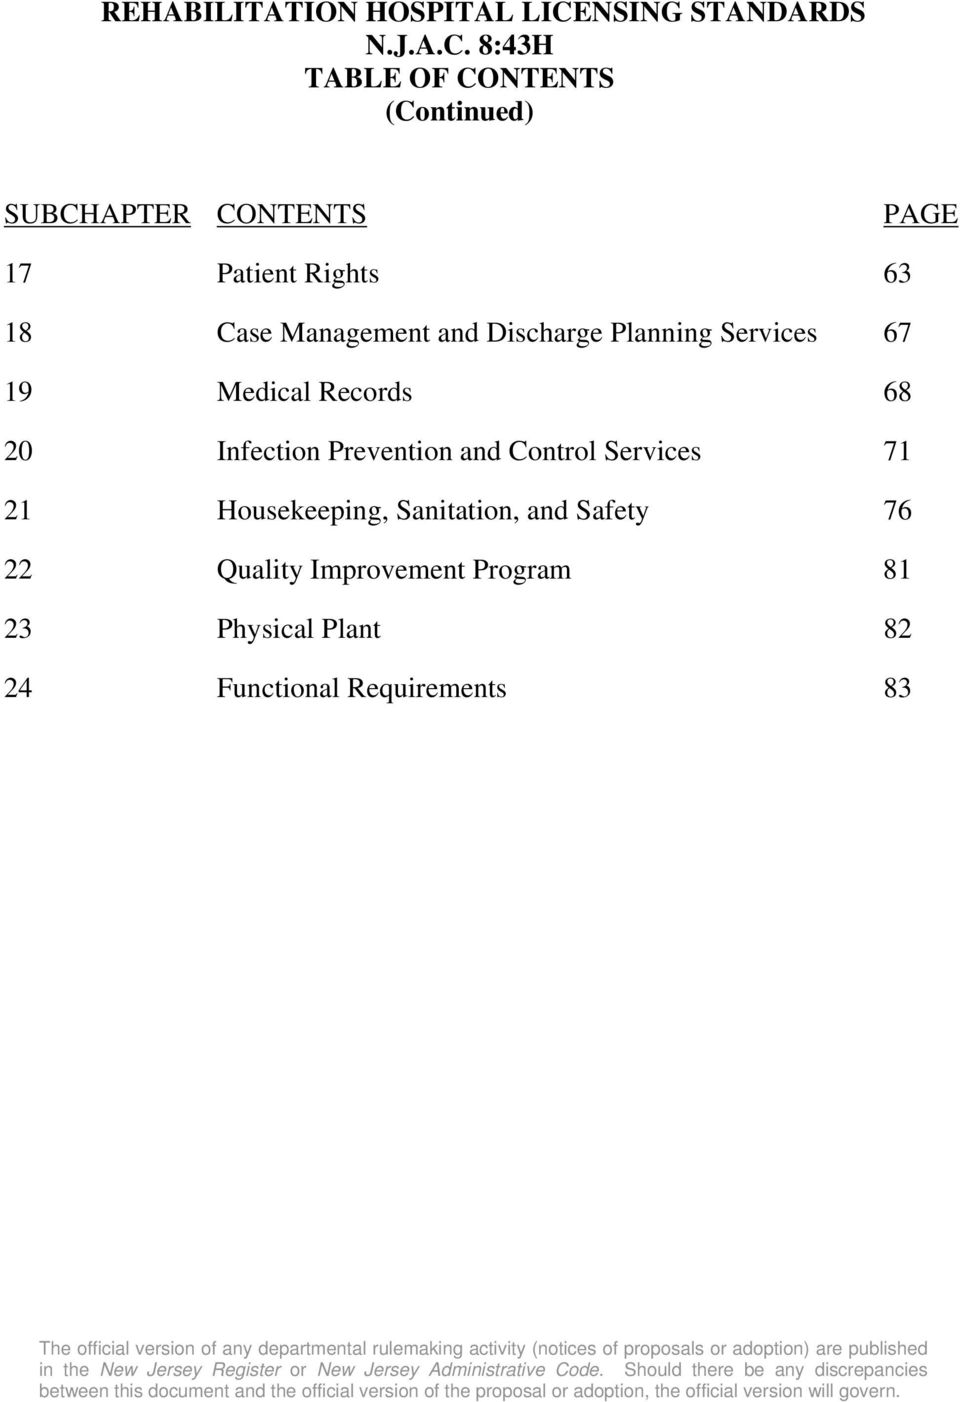 8:43H TABLE OF CONTENTS (Continued) SUBCHAPTER CONTENTS PAGE 17 Patient Rights 63 18 Case